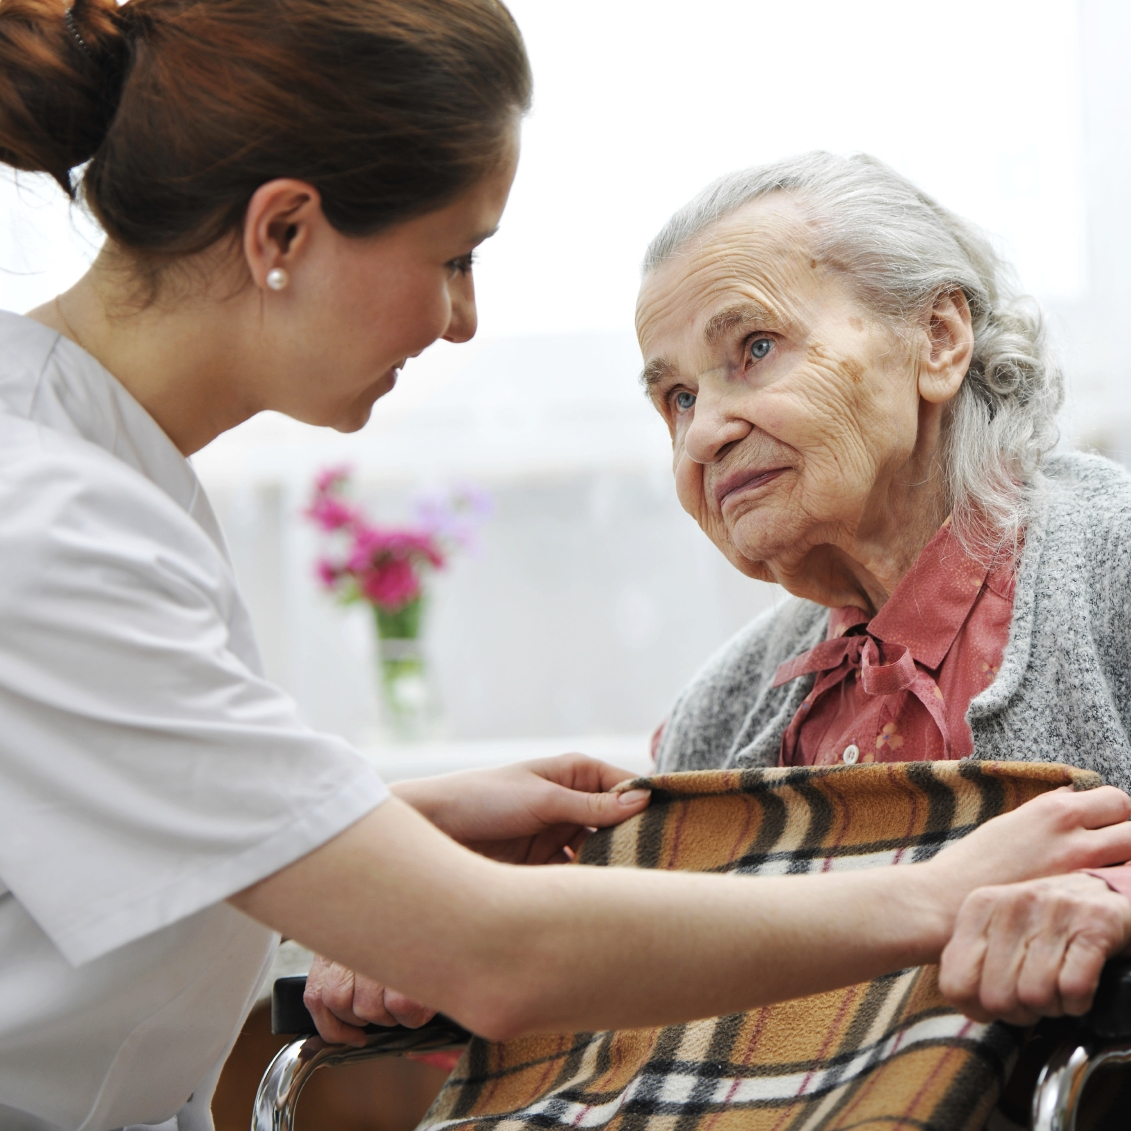 Smiling nurse taking care of old woman